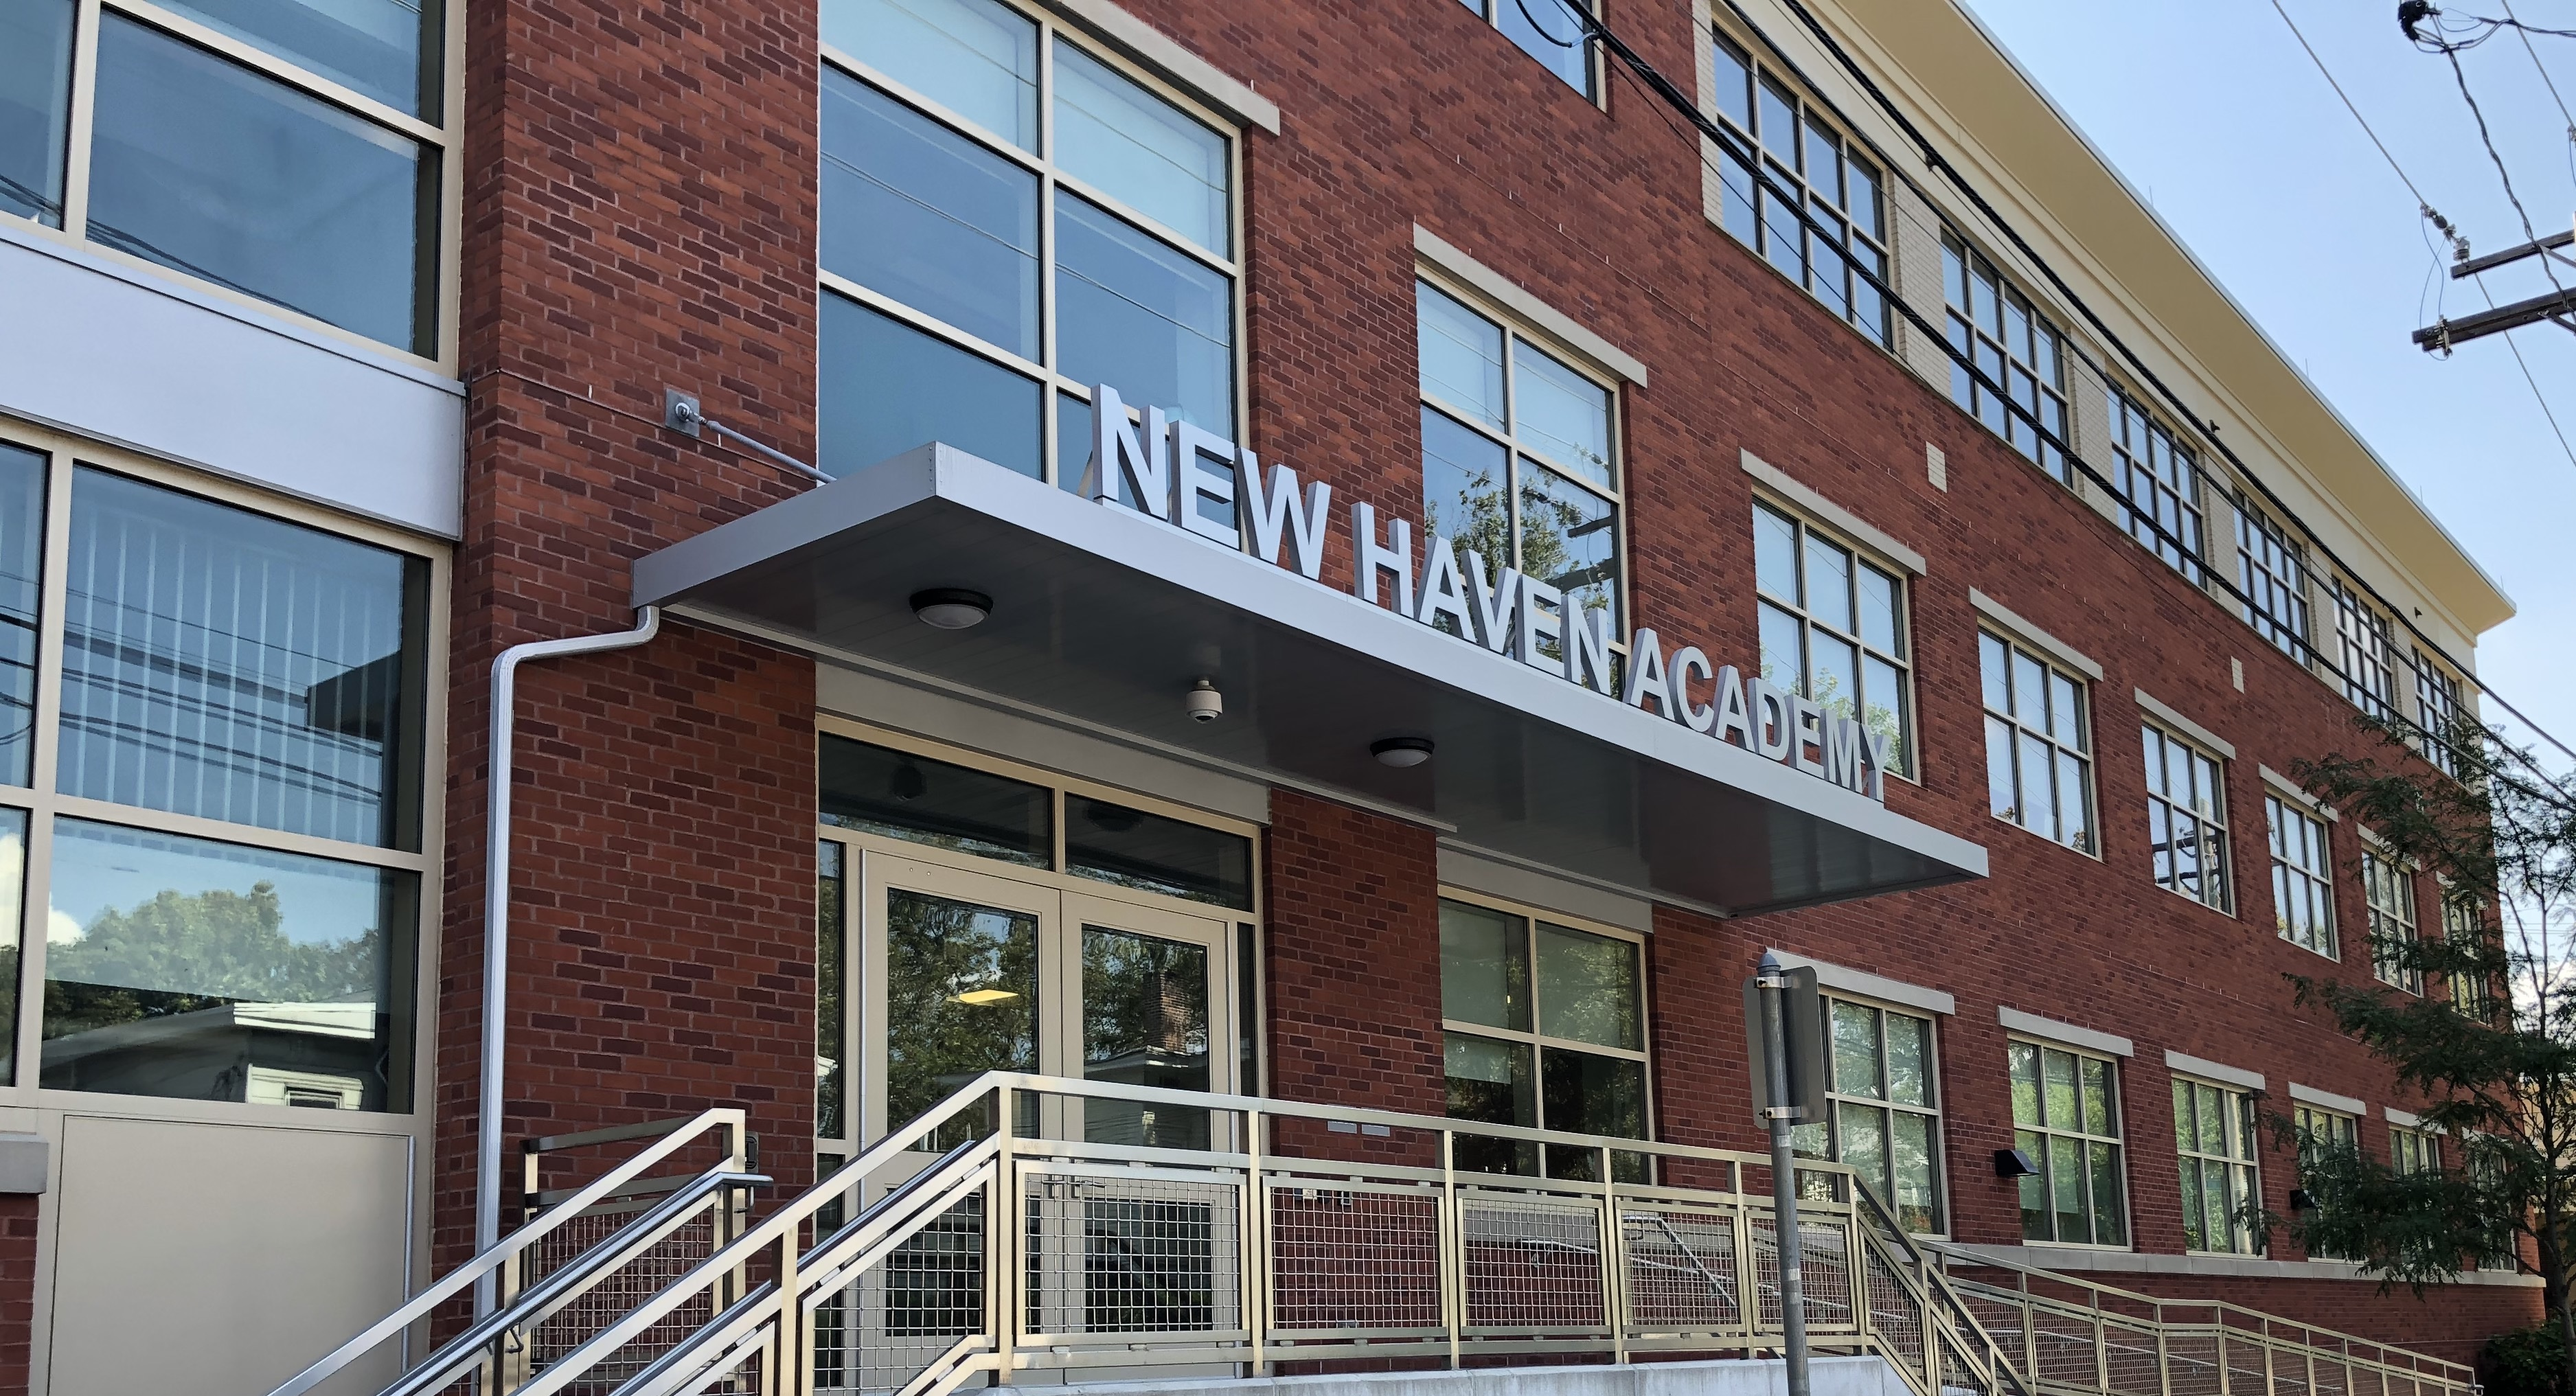 New Haven Academy in New Haven, CT; Greg Baldwin and Meredith Gavrin of New Haven Academy.